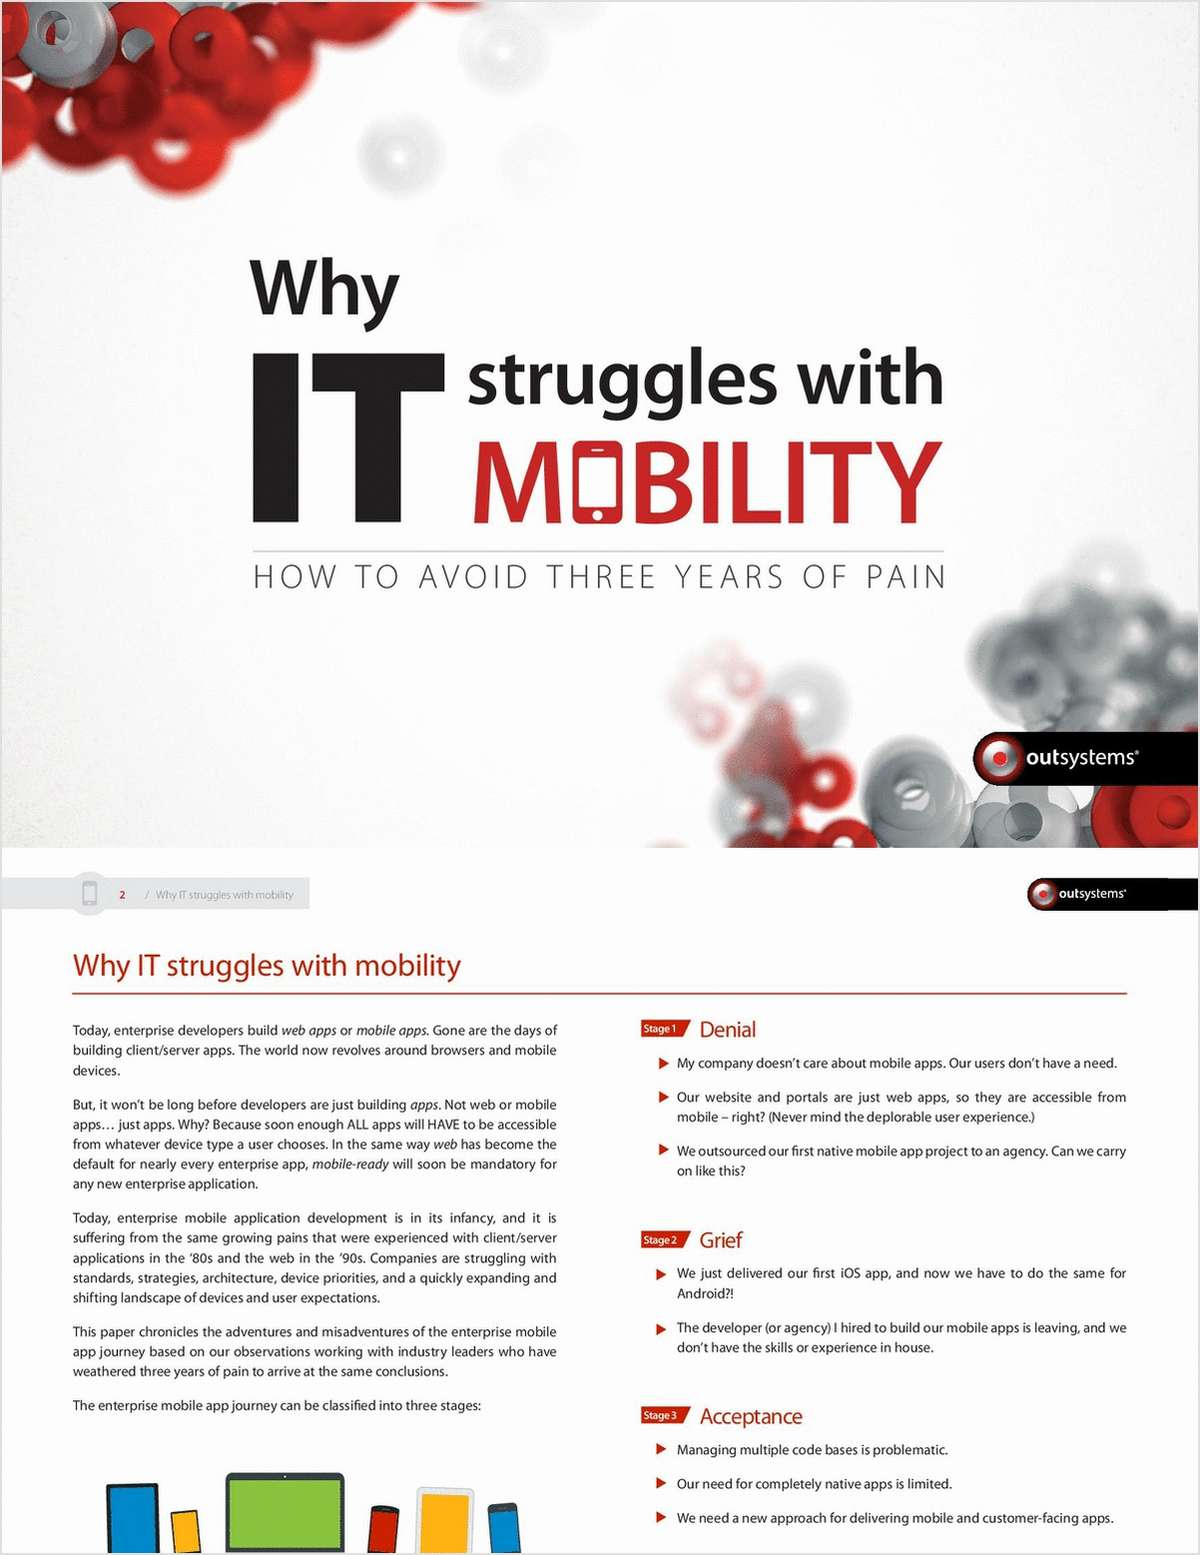 Why IT Struggles with Mobility